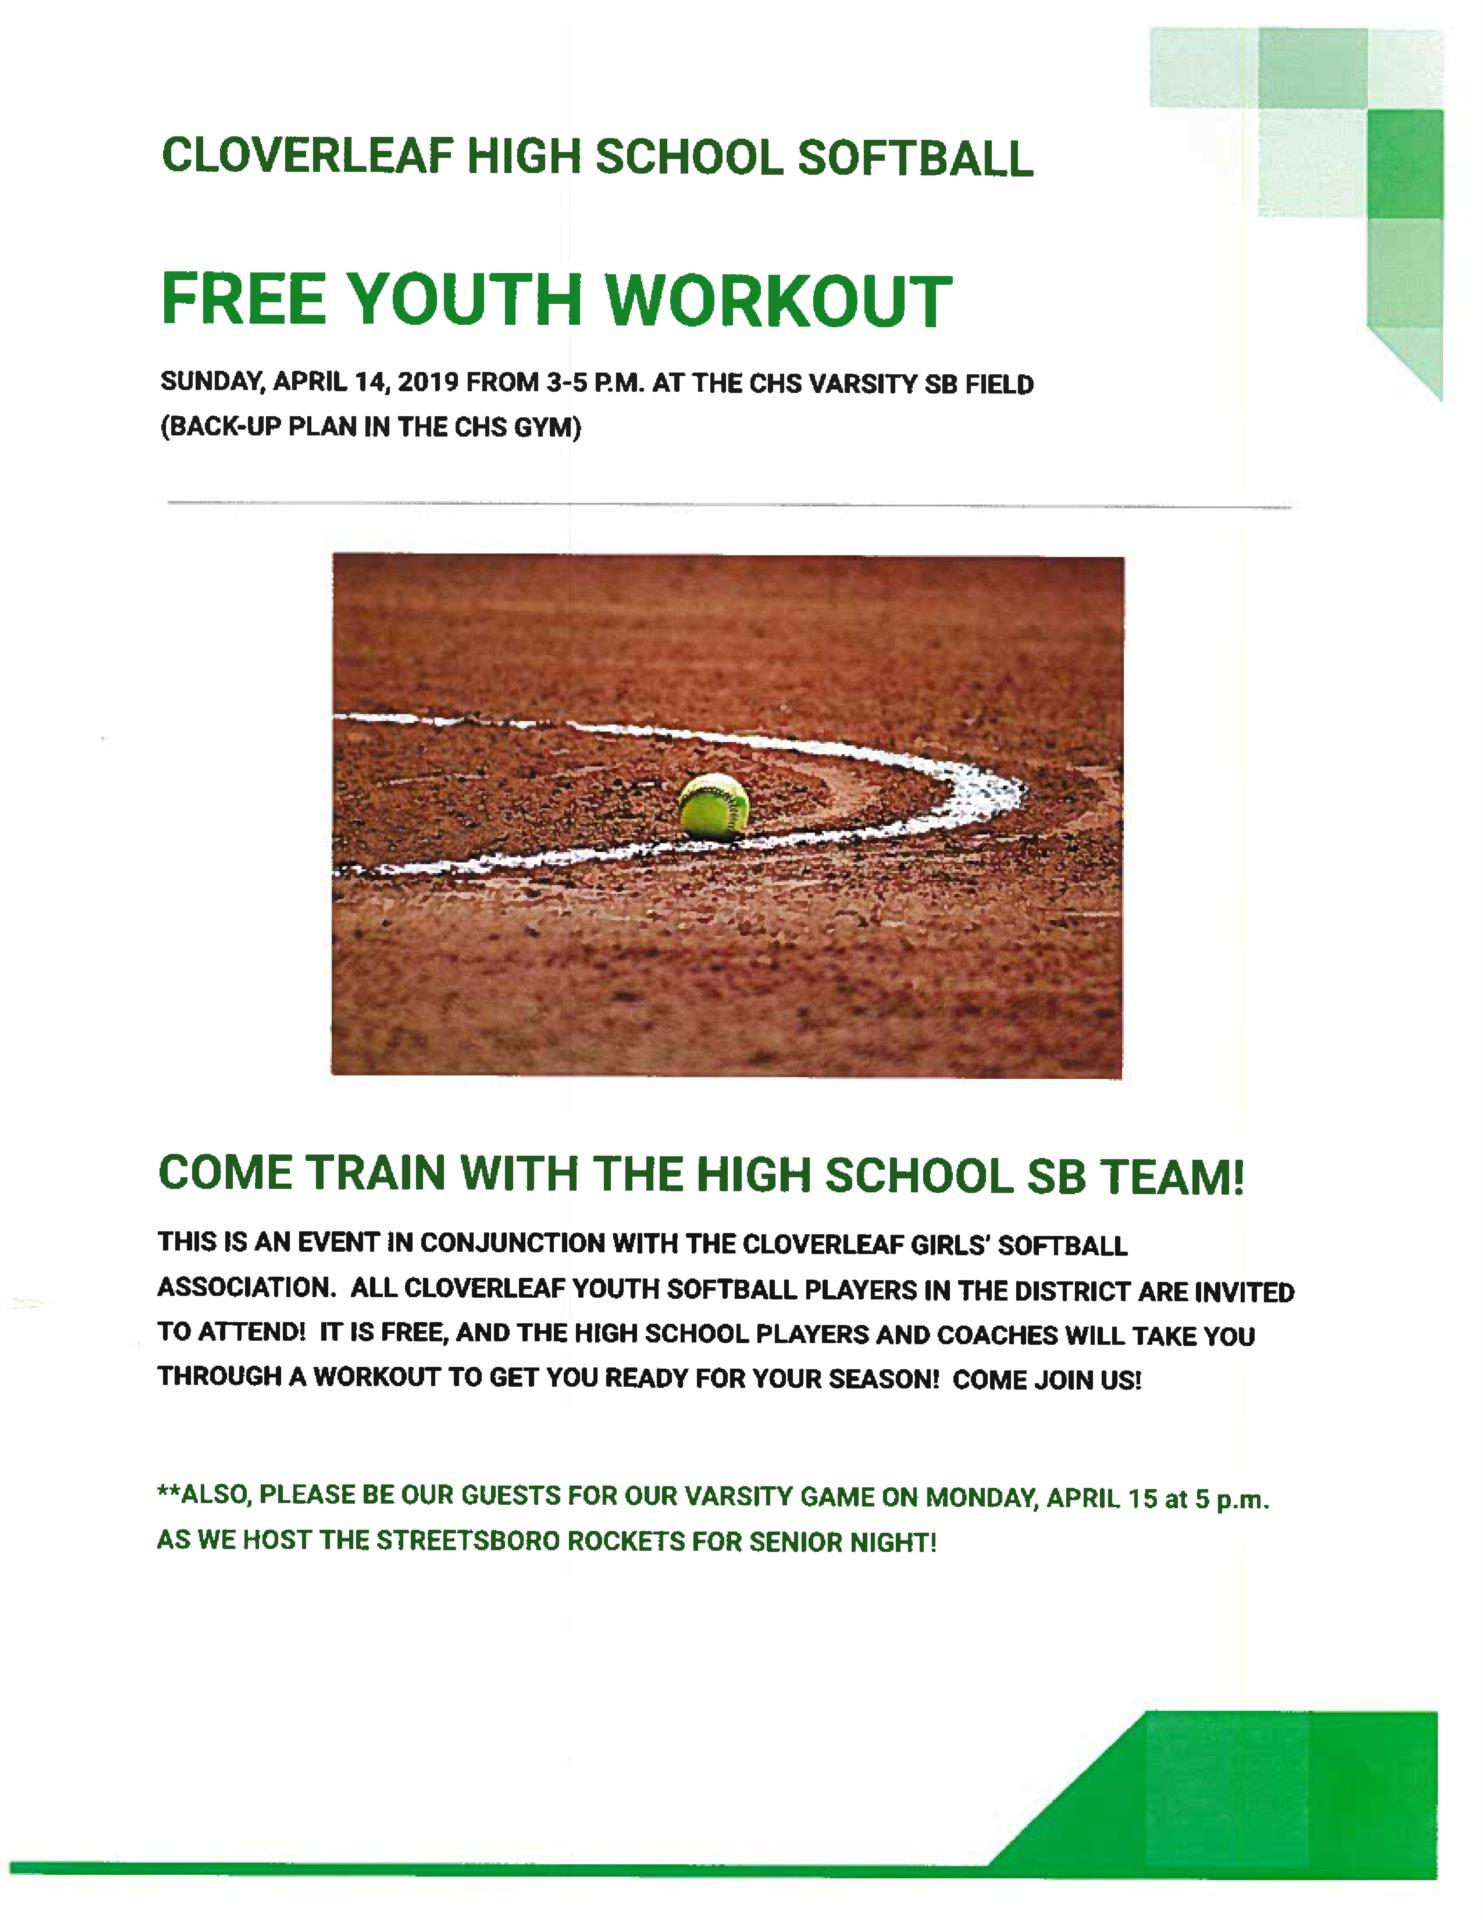 Youth softball workout flyer